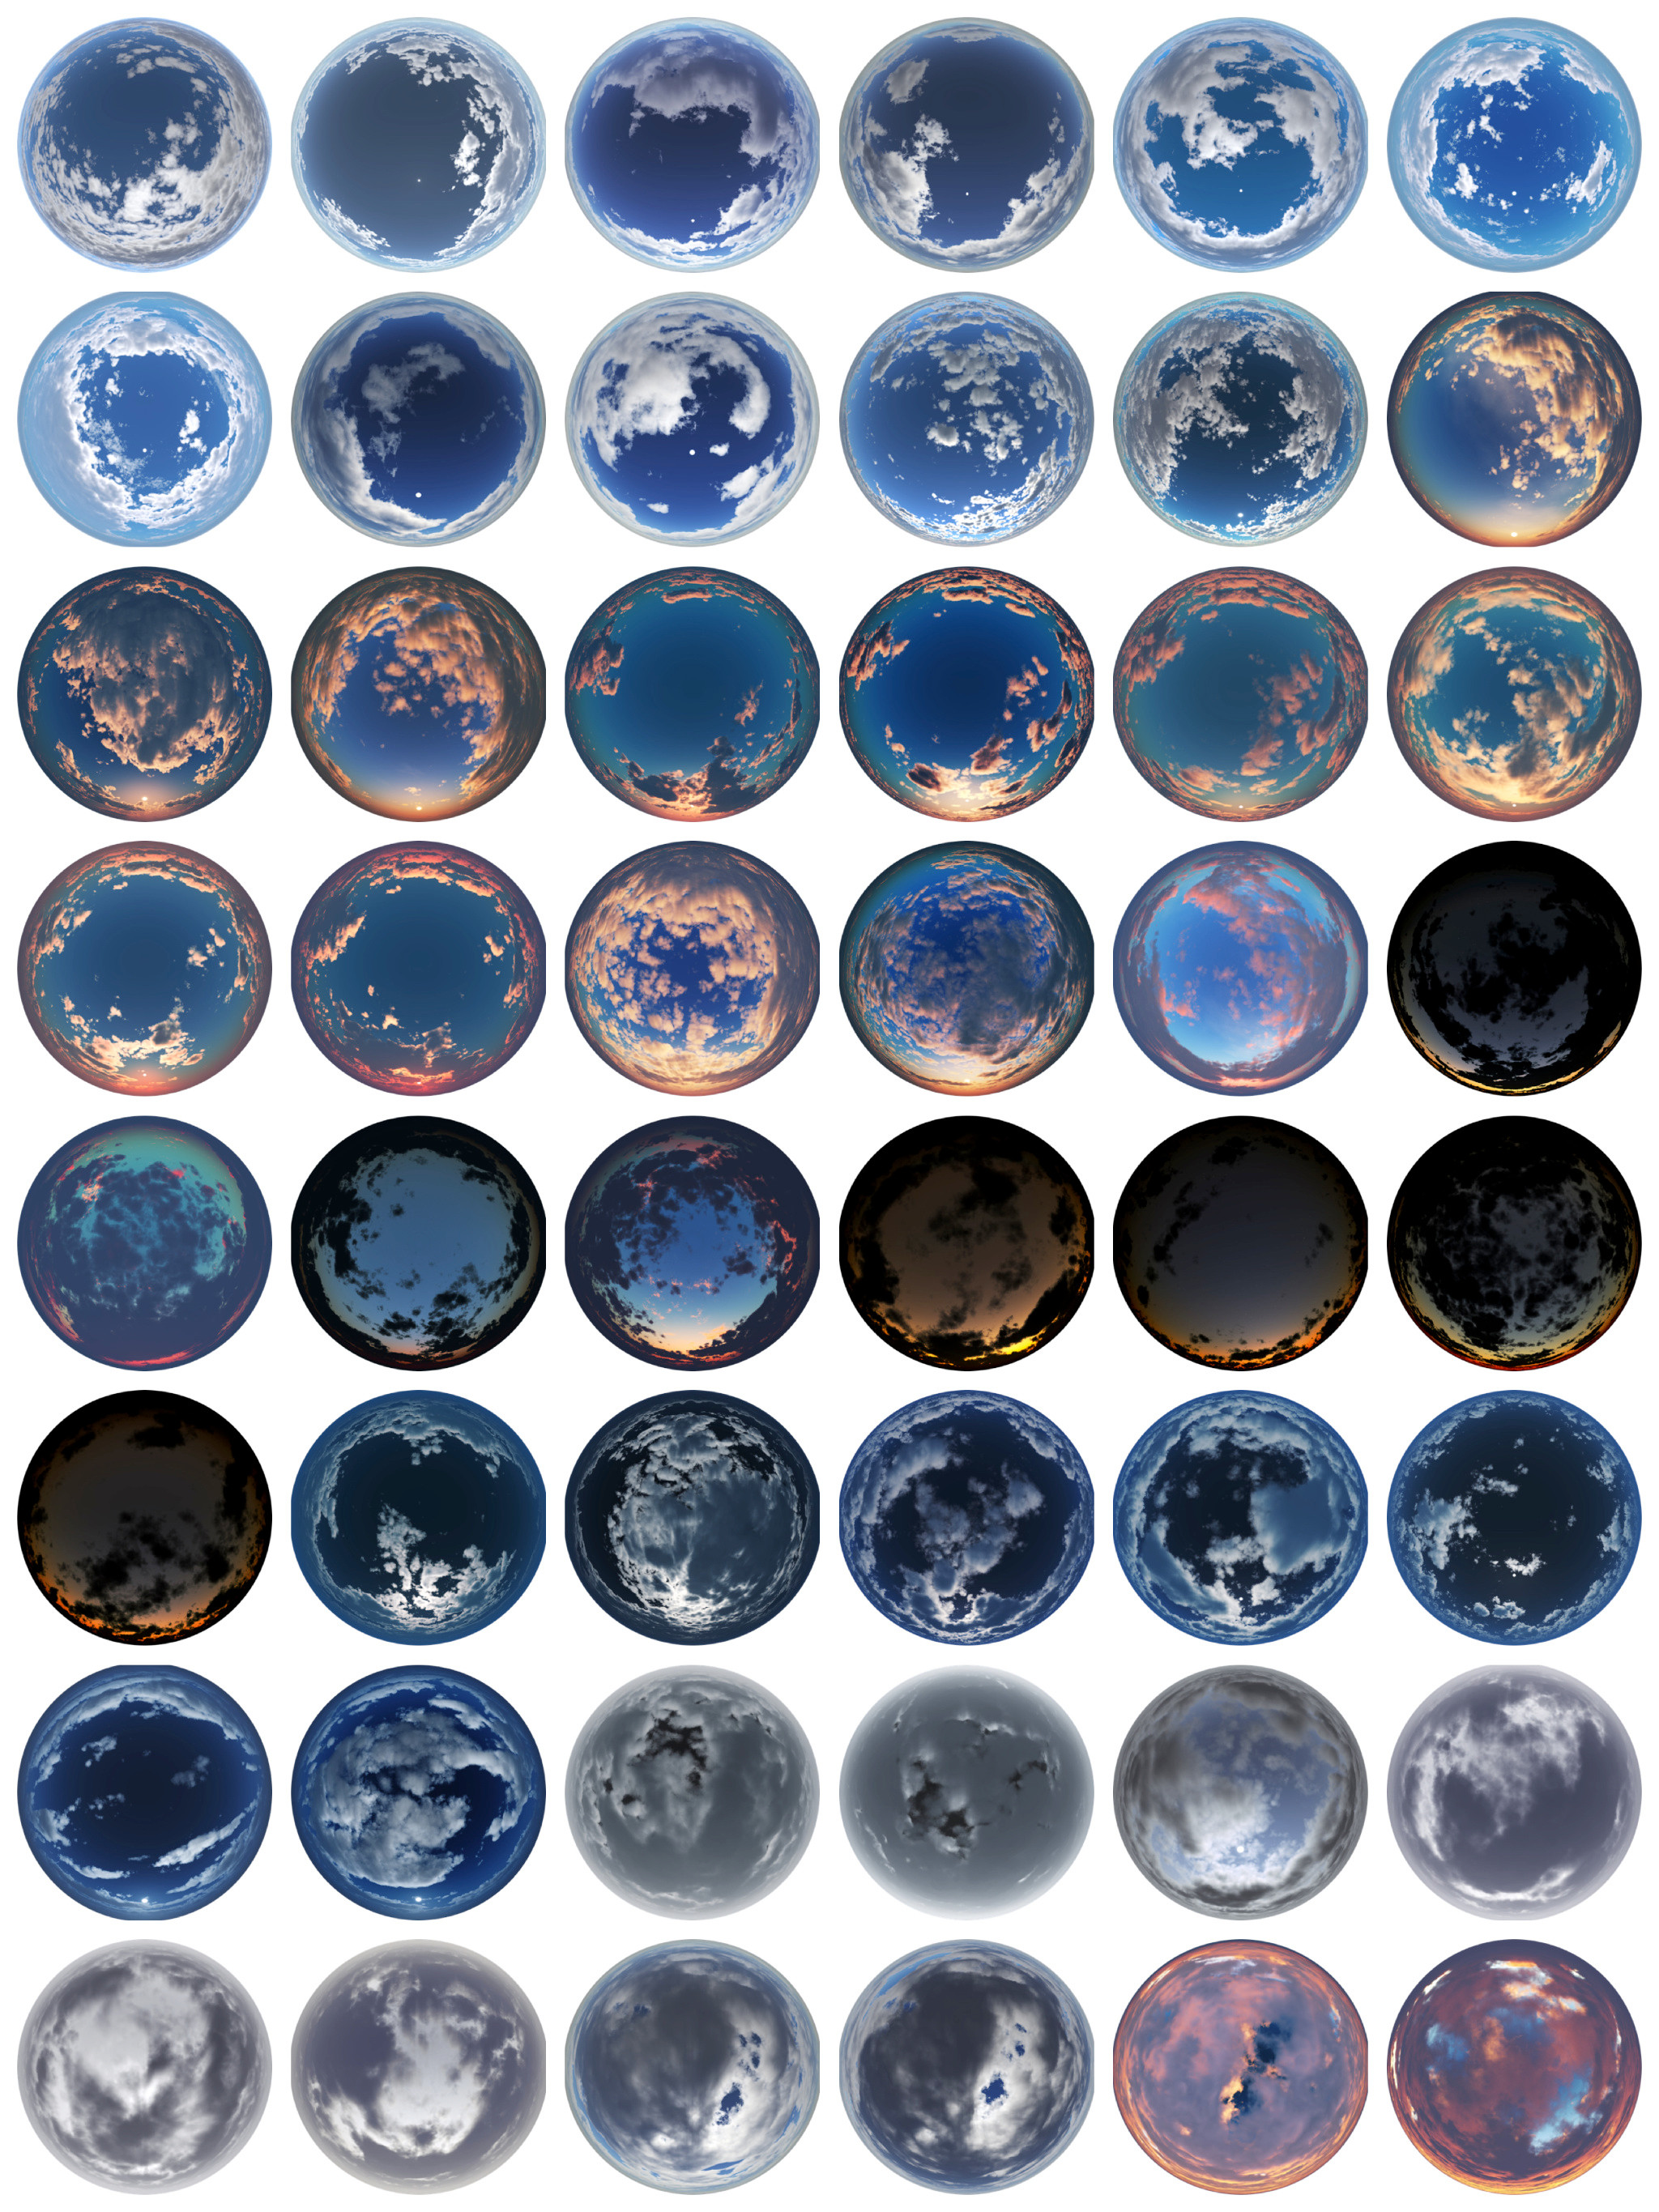 Here are all 48 skies. A few of them are variants of each other, while similar, all lighting situations are different.